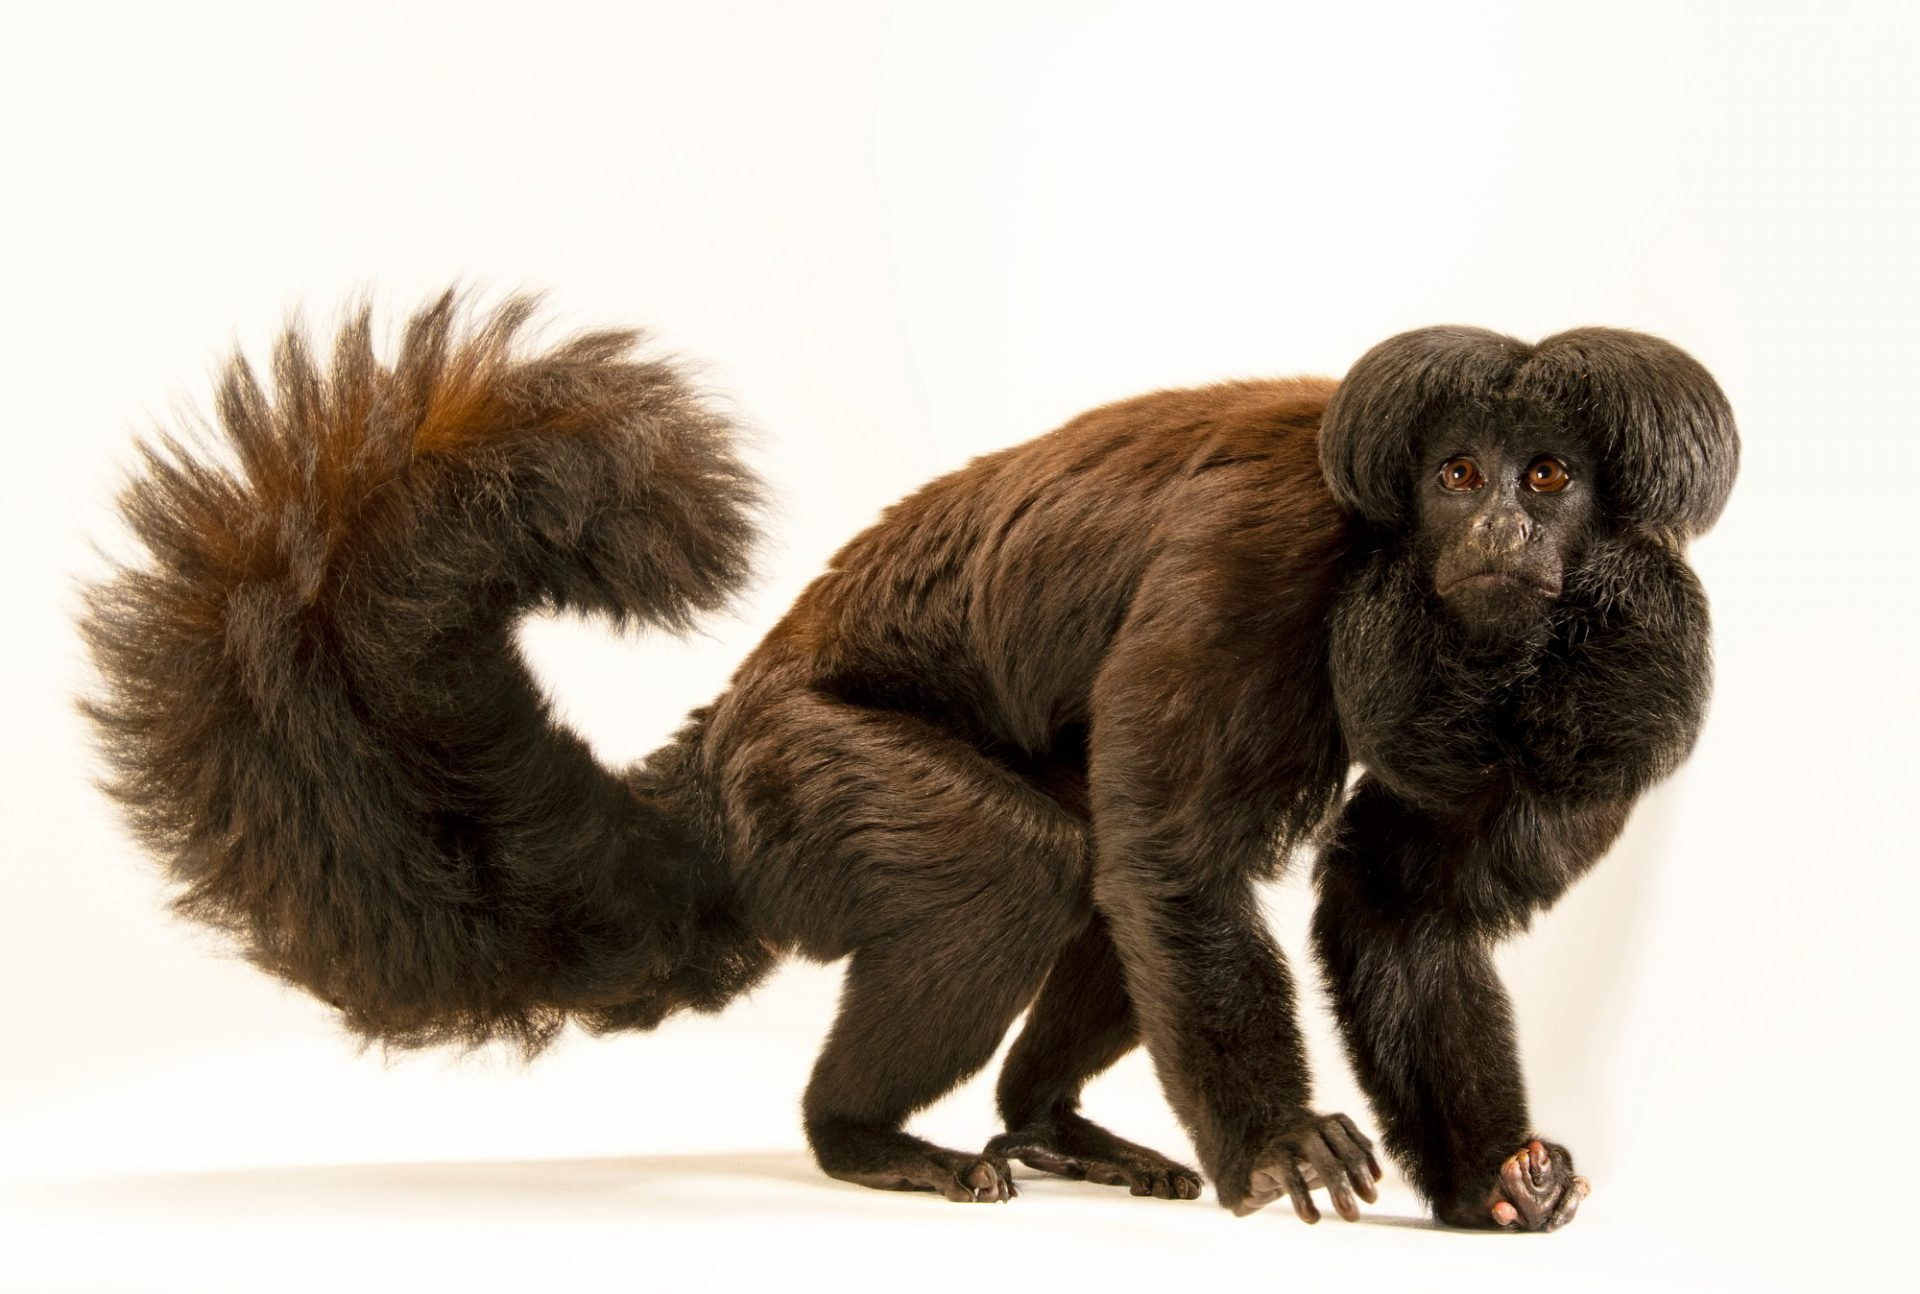 Photo: A critically endangered back bearded saki (Chiropotes satanas) at Zoo Brasilia.